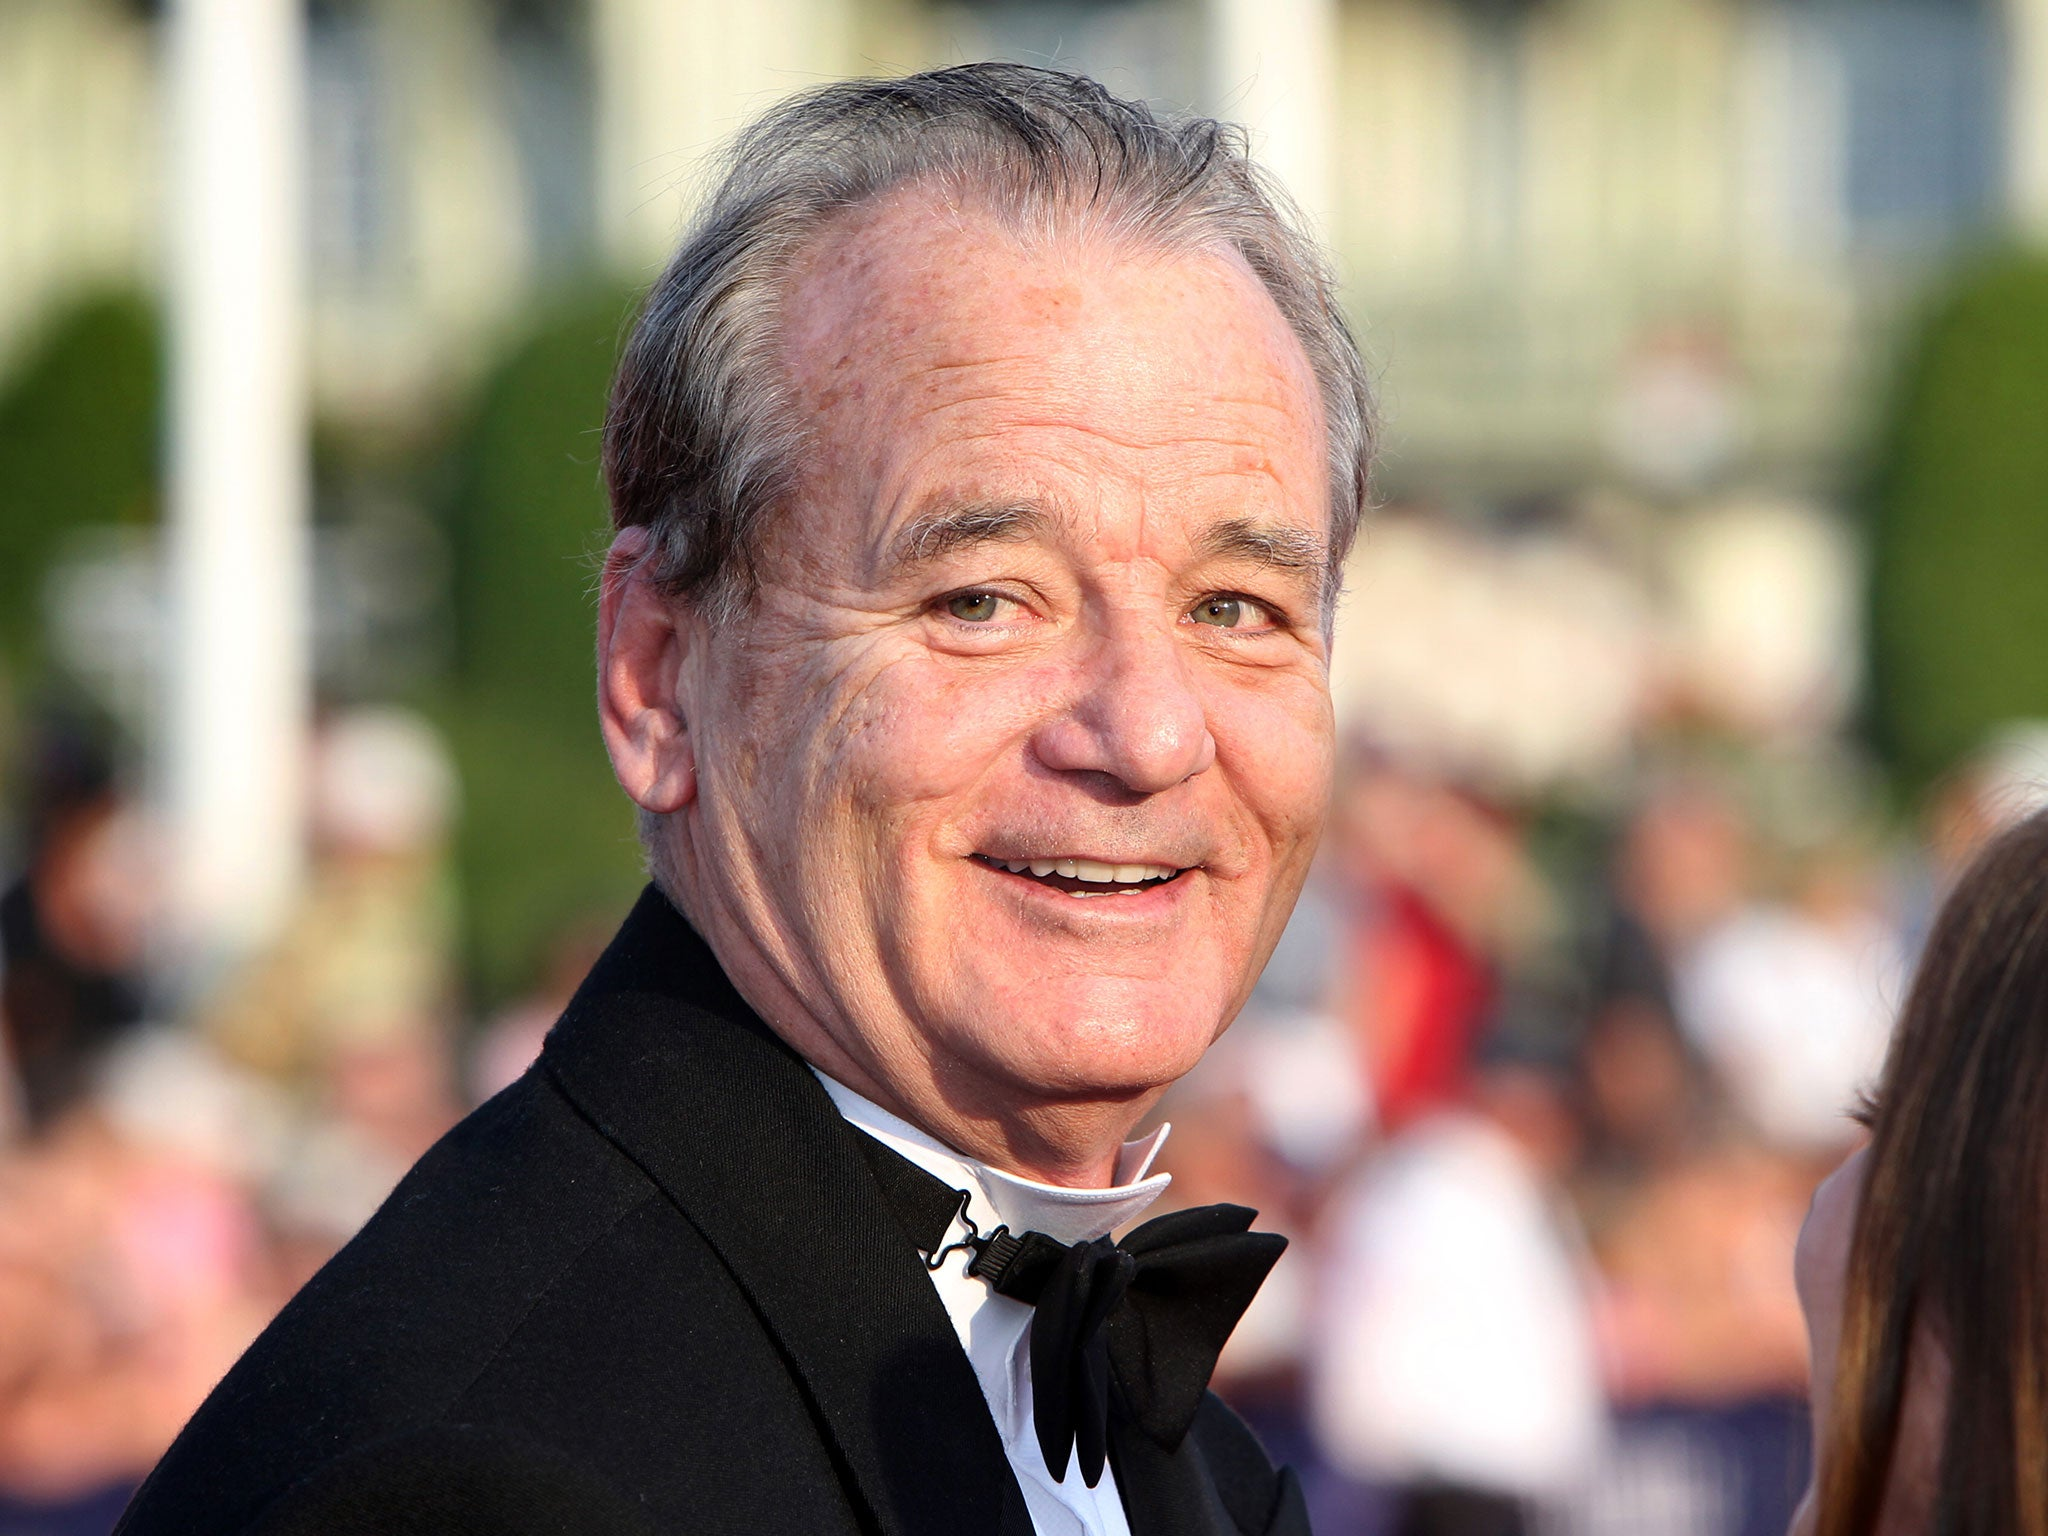 bill murray filmsbill murray movies, bill murray films, bill murray groundhog day, bill murray james belushi, bill murray phantogram, bill murray movies list, bill murray art, bill murray dead, bill murray gif, bill murray twitter, bill murray quotes, bill murray 2017, bill murray wiki, bill murray son, bill murray imdb, bill murray steals french fries, bill murray wu tang, bill murray and tom hanks, bill murray elephant, bill murray interview